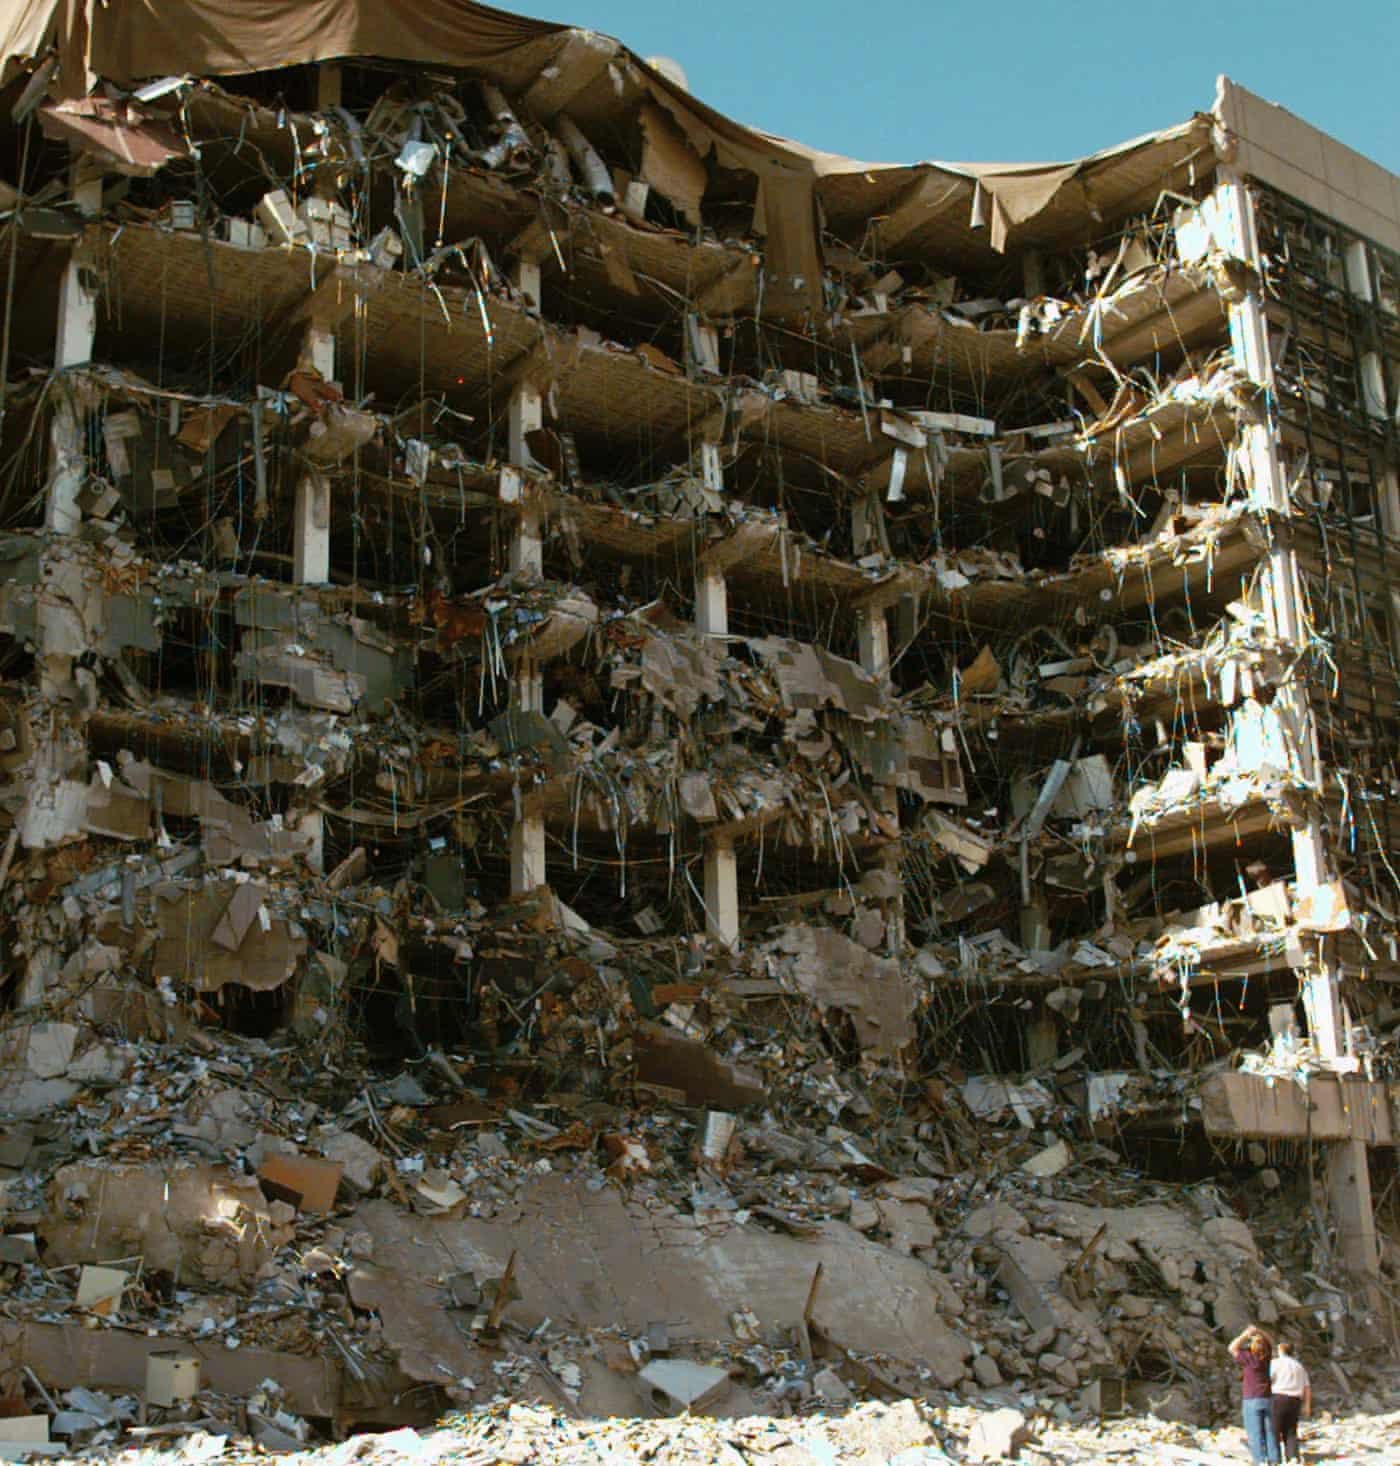 Oklahoma City bombing: 20 years later, key questions remain unanswered